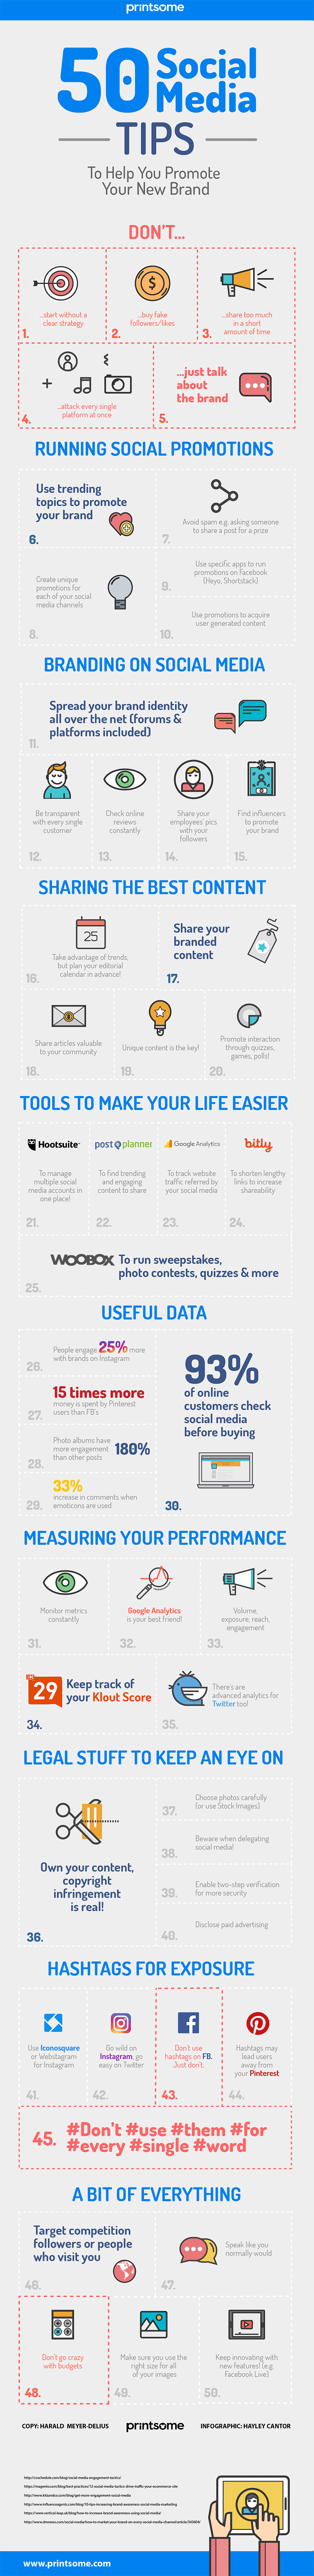 INfographic lists 50 tips to help improve social media marketing performance